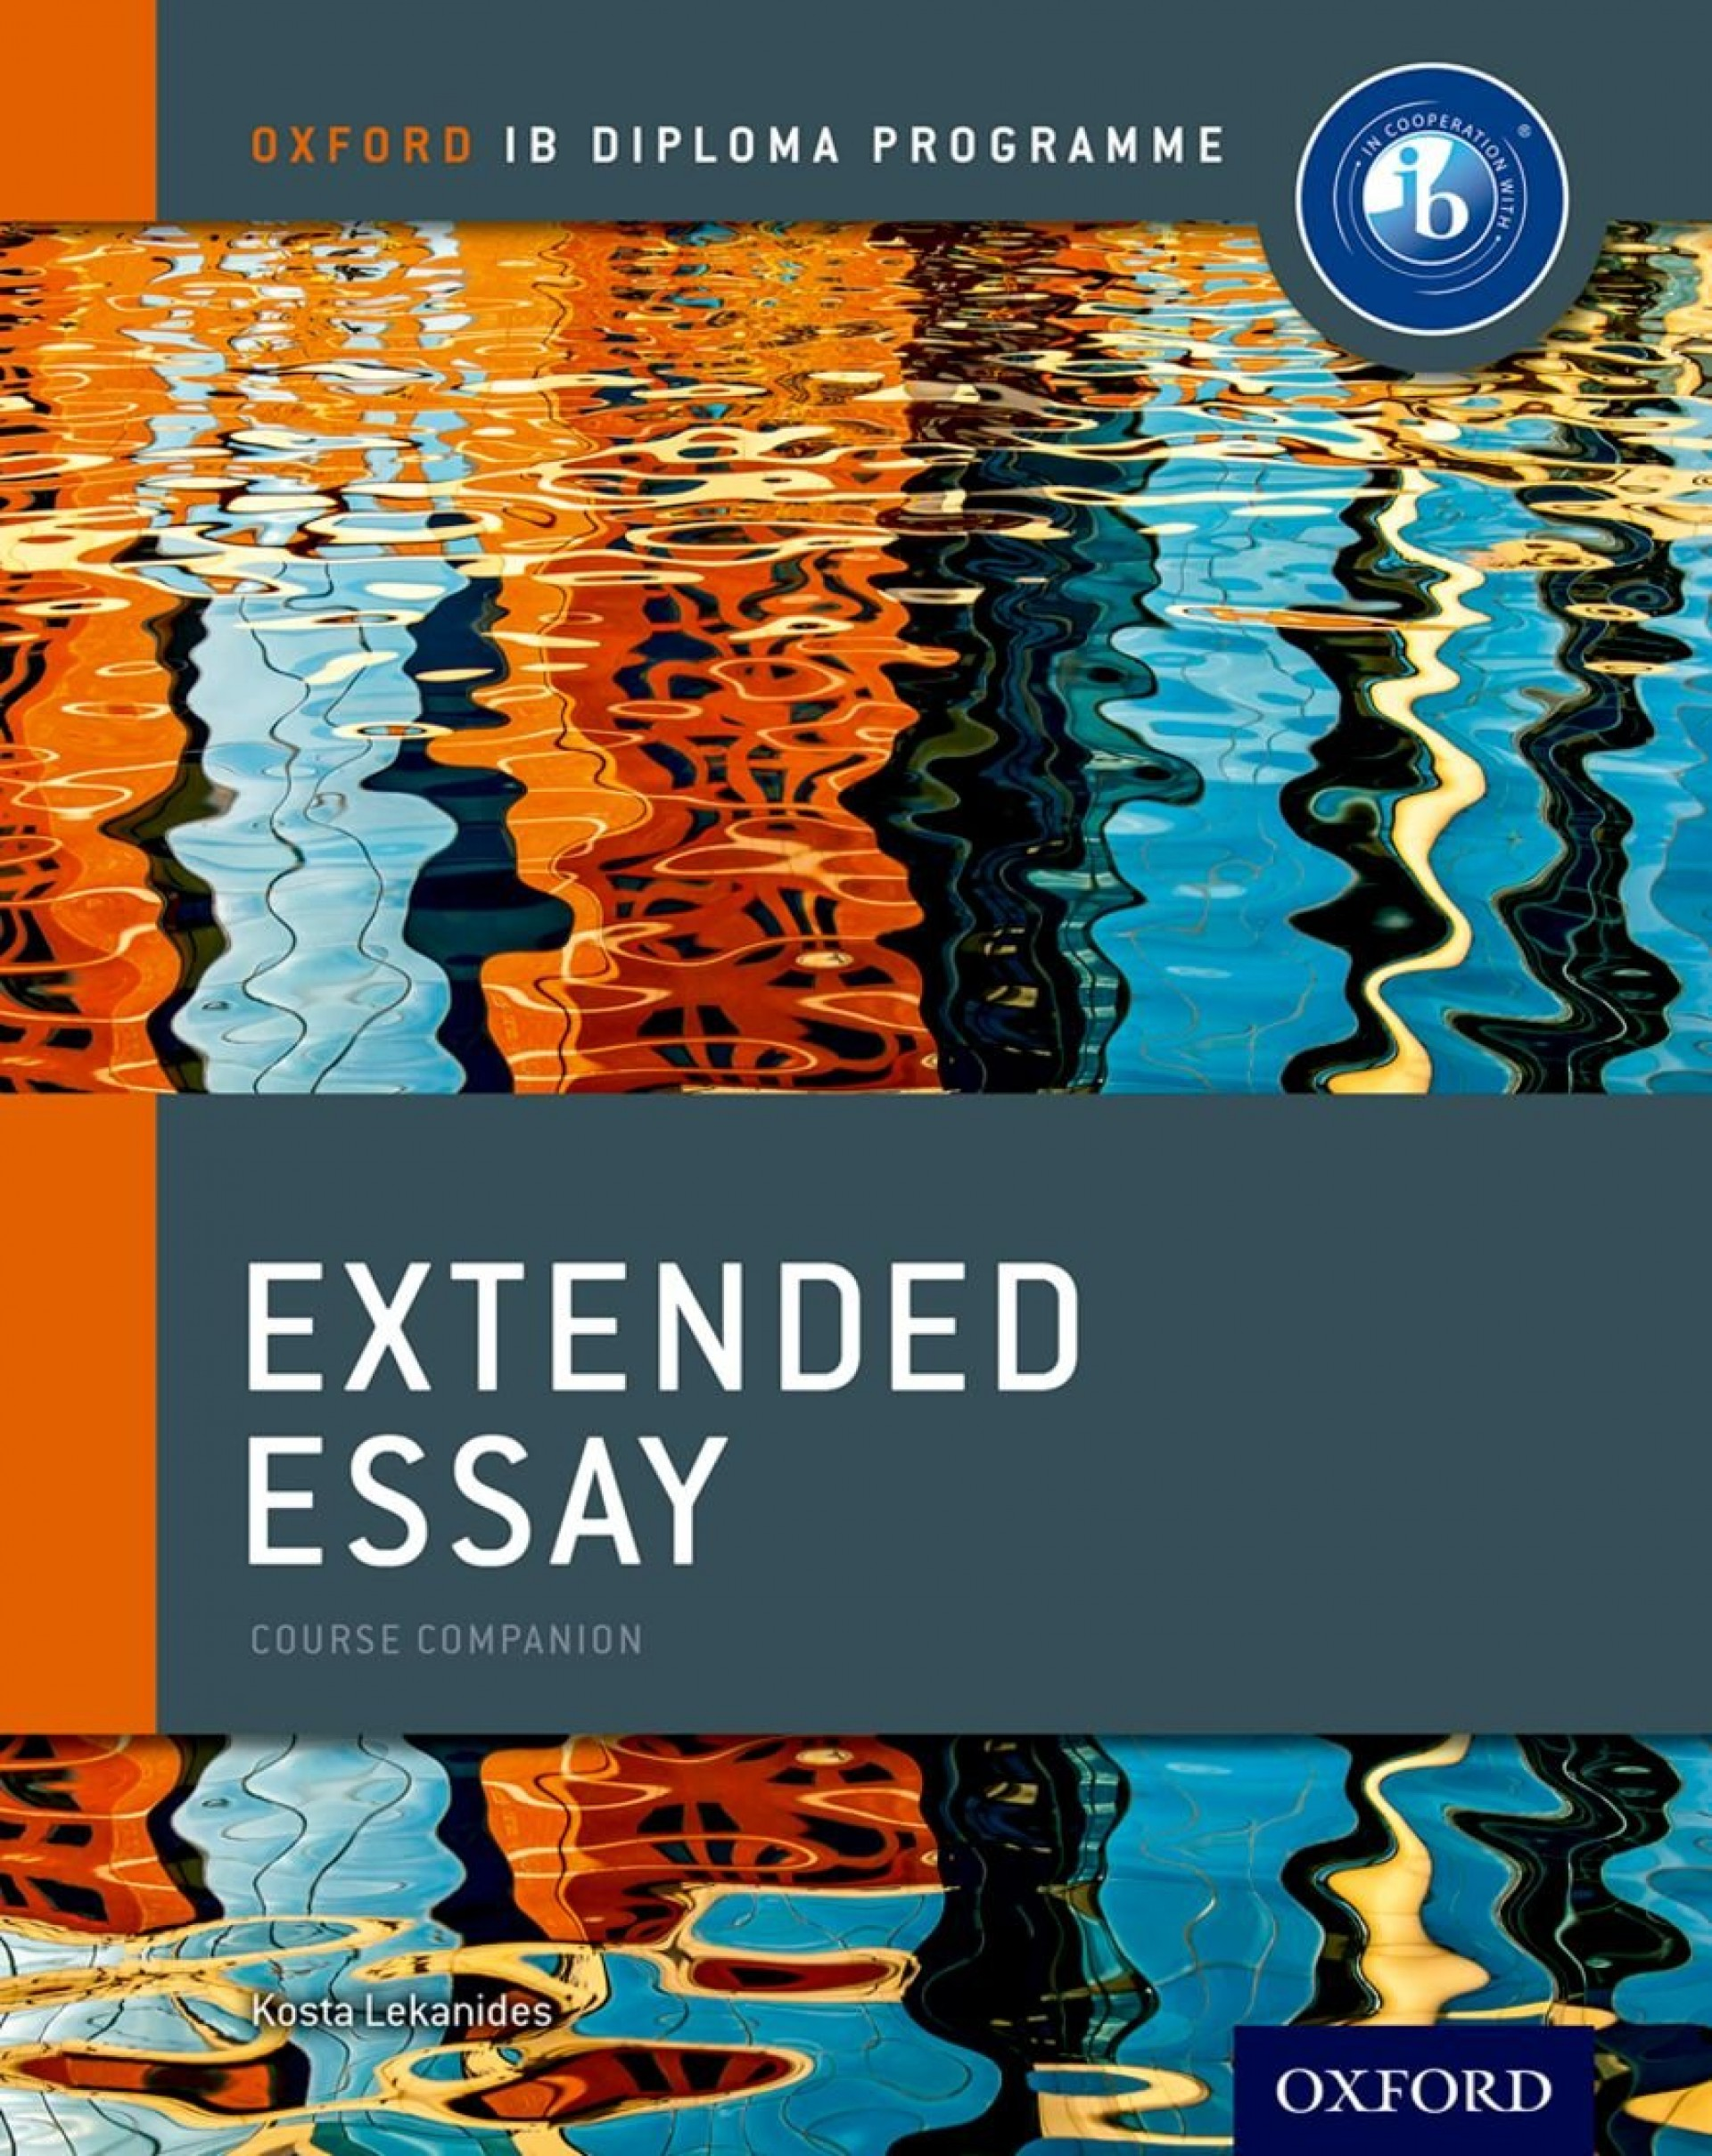 001 Essay Example 712bmr6n3mil Ib Marvelous Extended Topics History Biology Format 1920